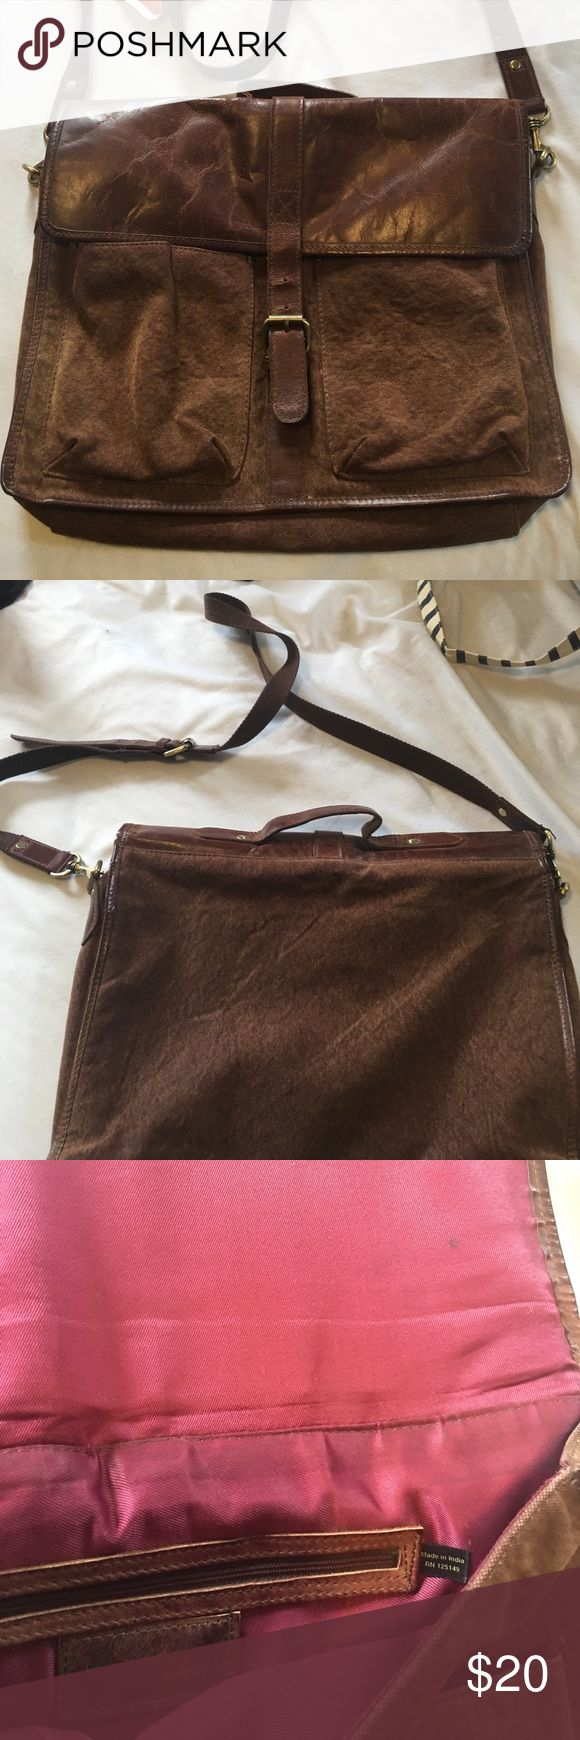 Messenger bag Brown with fake leather accents messenger bag. Buckle closure. Some lite stains on the inside Martin satin lining one zipper closure inside Topman Bags Crossbody Bags